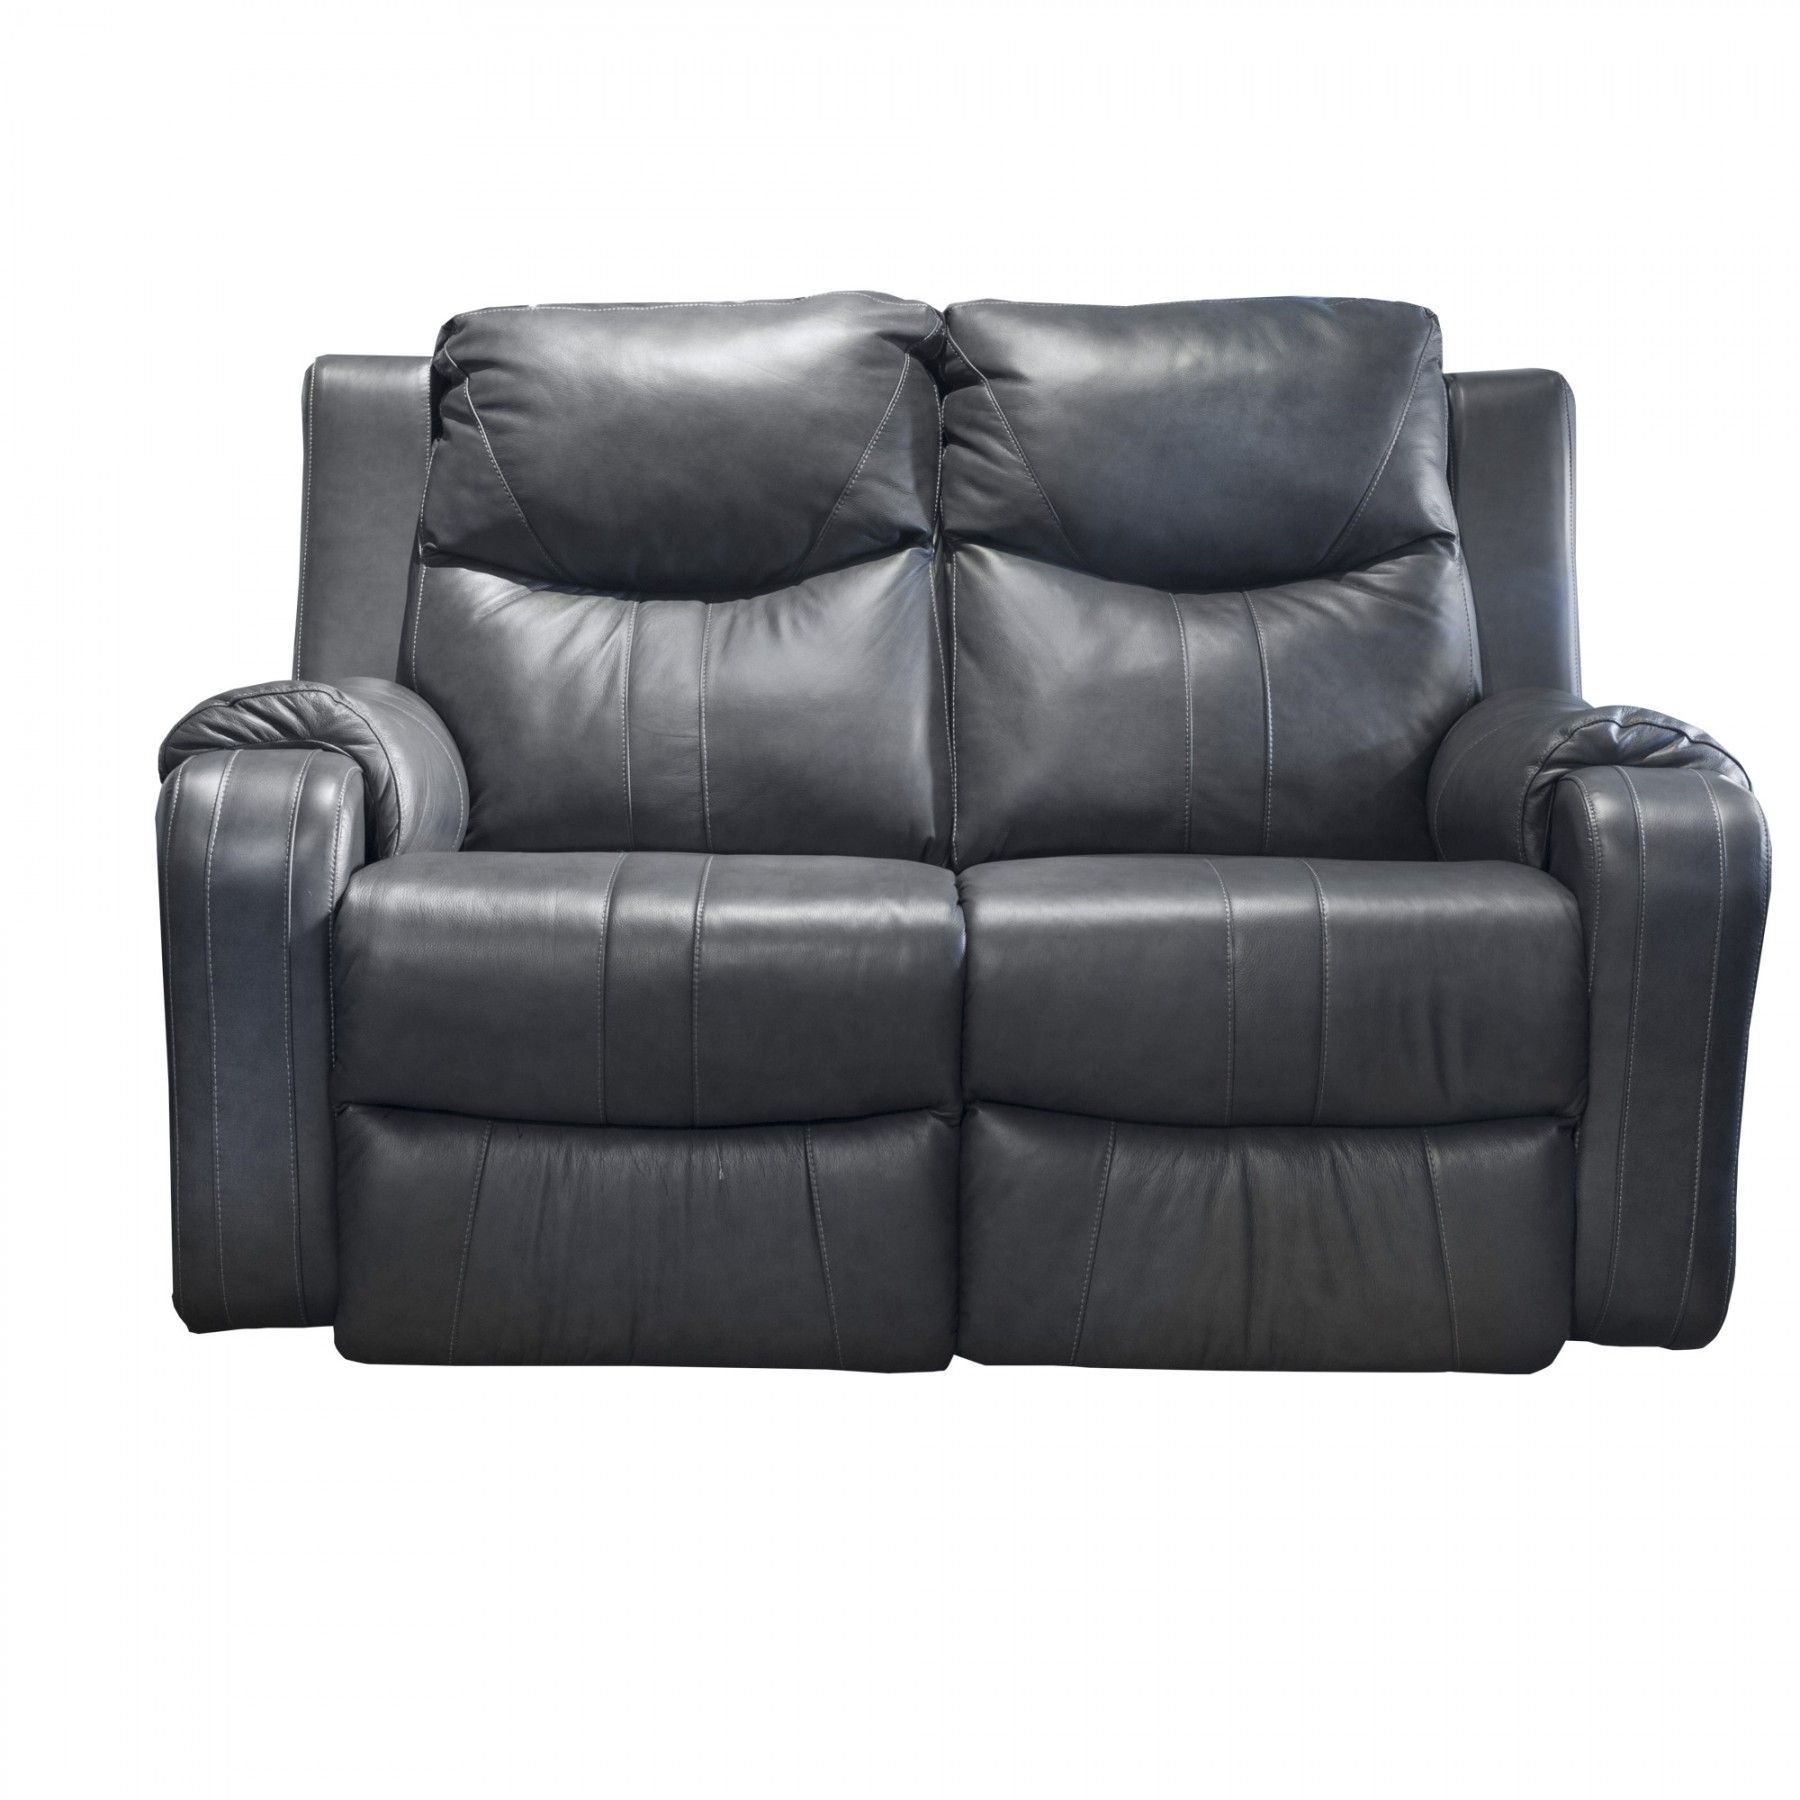 Dual Sofa Recliners In 2018 A Mix Of Function Comfort And Style